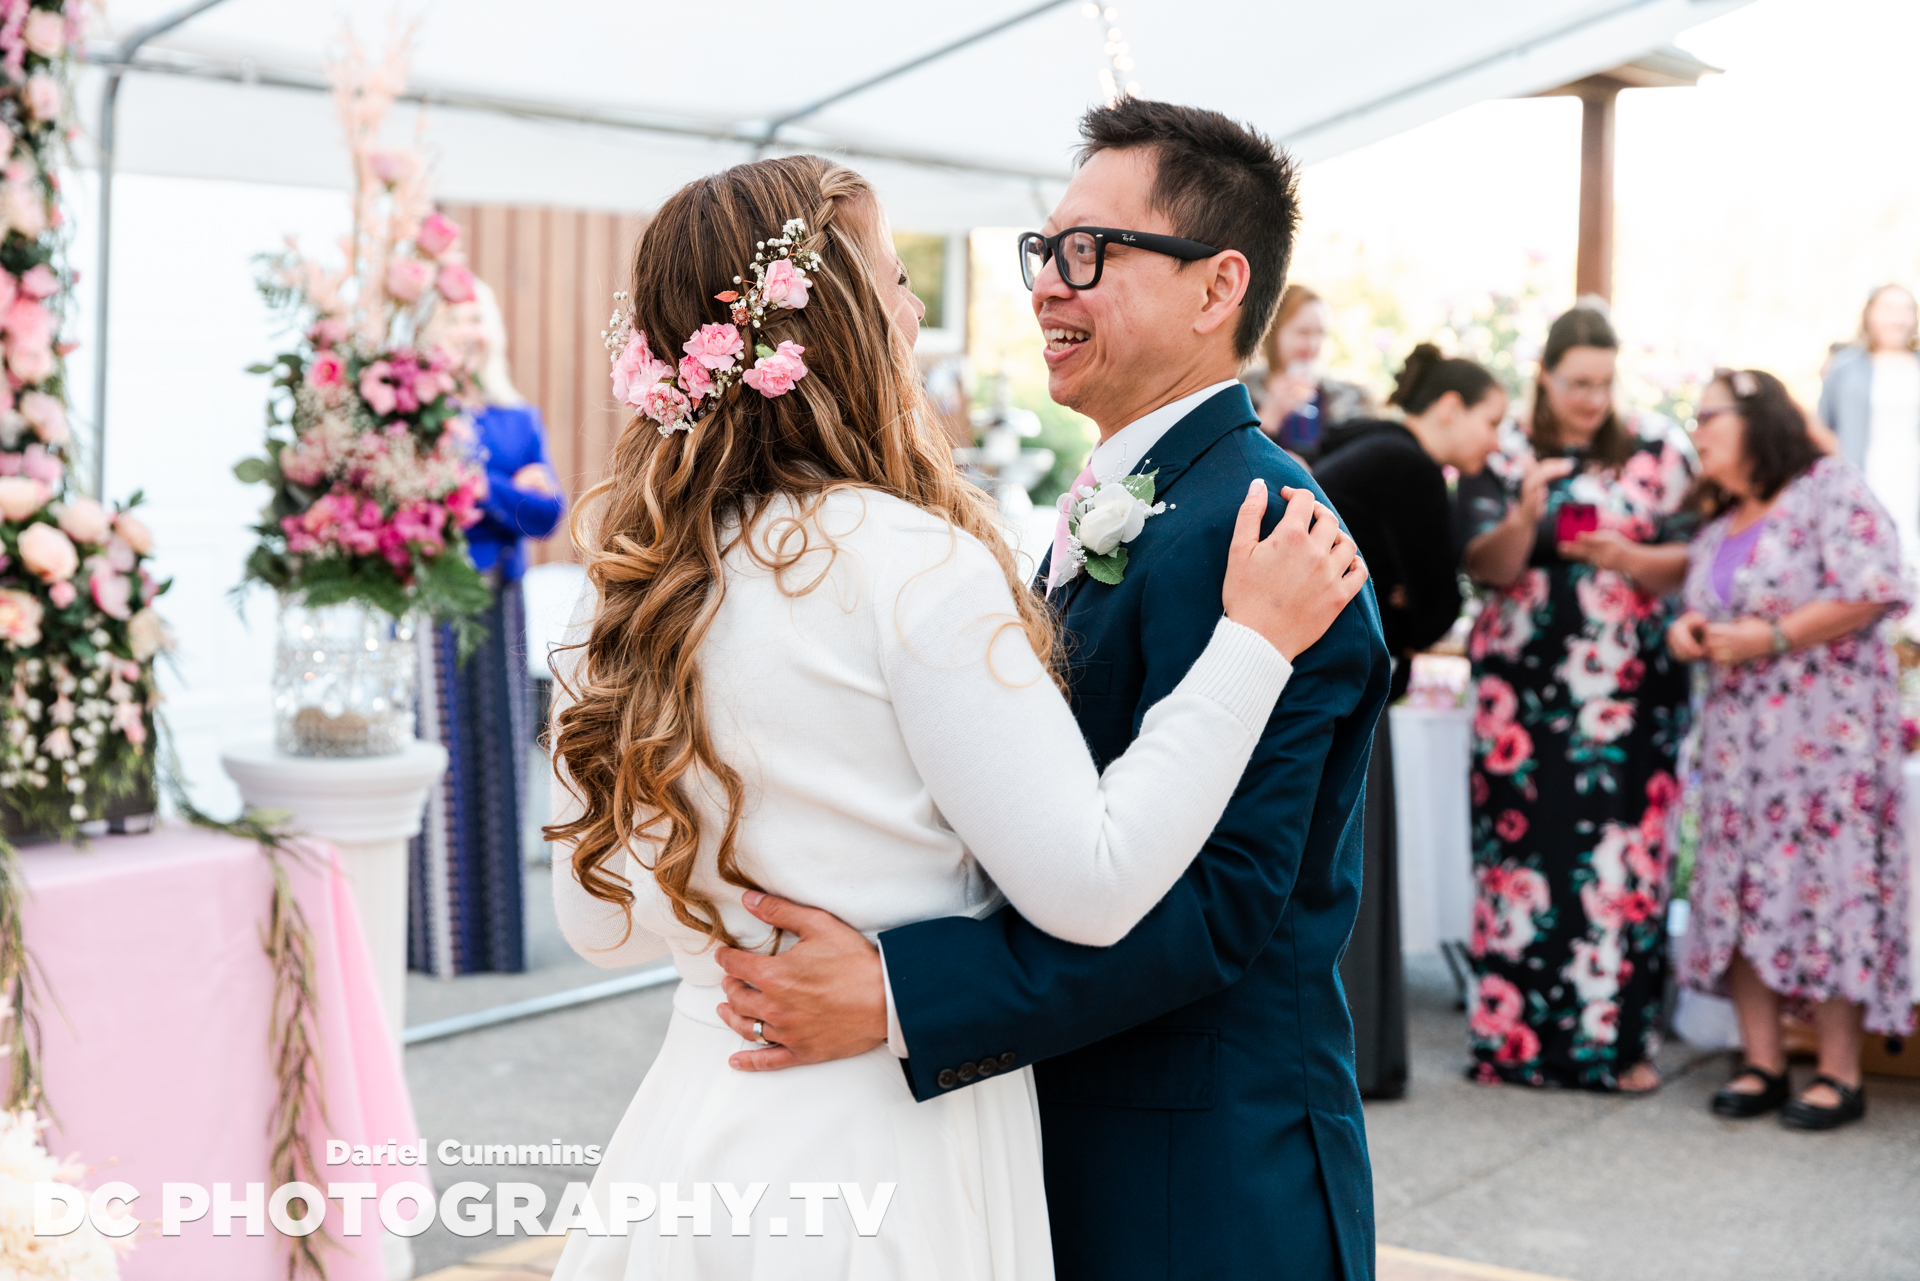 When KOMO photographer Doug Pigsley saw a couple practicing swing dancing in Queen Anne's Counterbalance Park - he had to get the story! What we learned was a sweet and uplifting tale of love. (Courtesy Dariel Cummins)